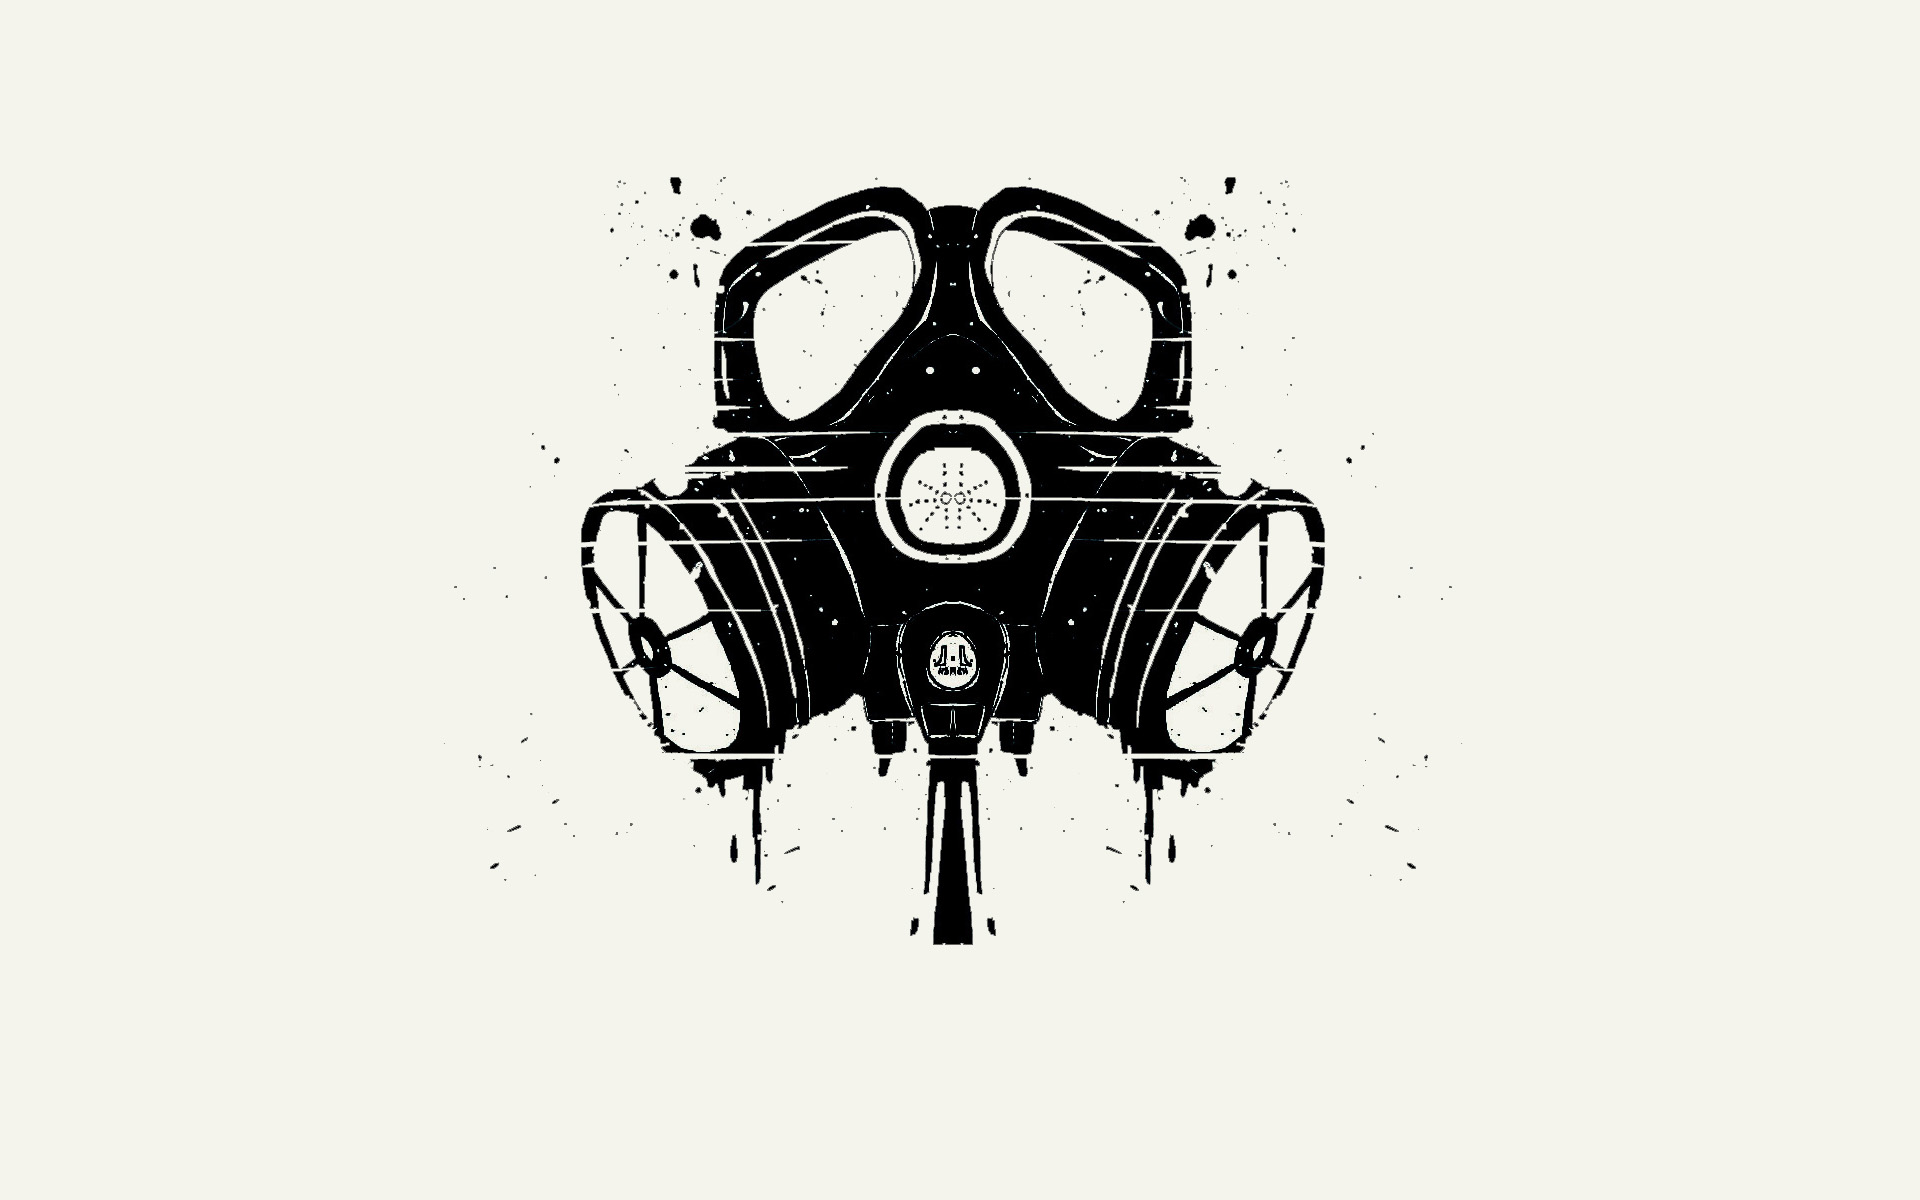 Gas Mask clipart smoke Mask Gas (27+) Wallpapers Mask